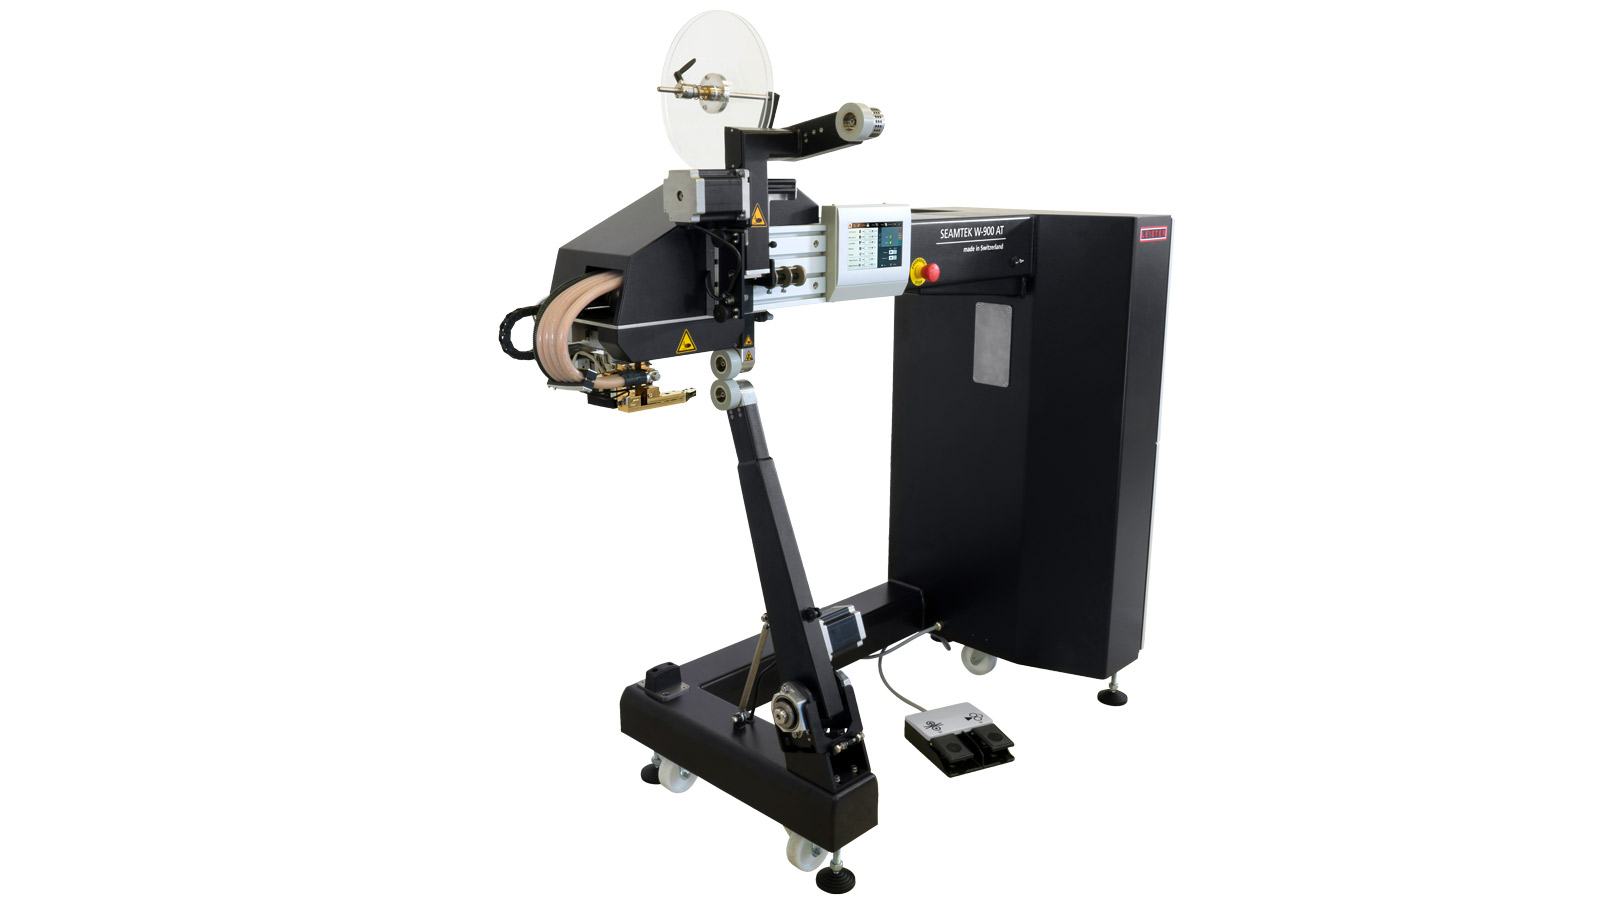 https://leister.azureedge.net/-/media/images/leister_internet/320-ltag-pw/322-products/welding-machines/seamtek-w-900-at/leister_welding_machine_seamtek_w-900_at.jpg?revision=e3fa9233-7ef3-4cea-bdd8-9ed66032d132